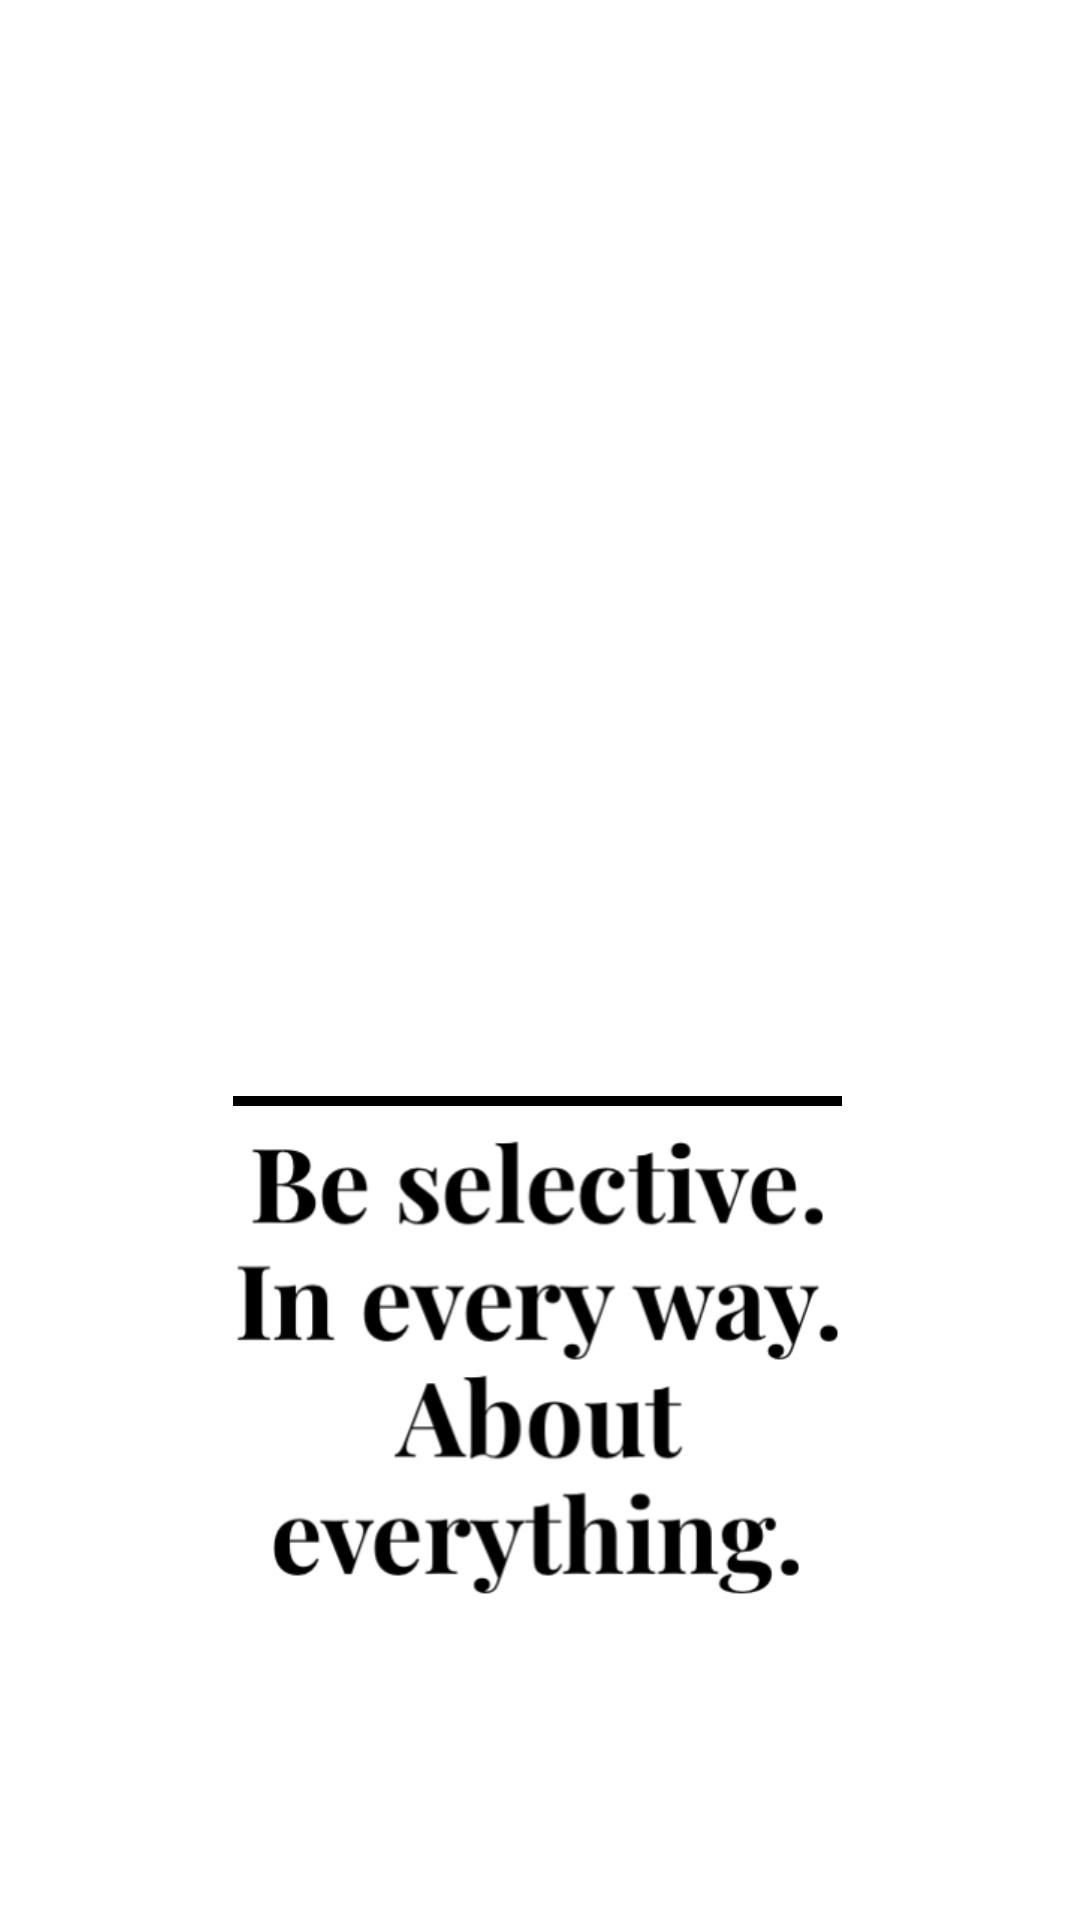 Choose well what's best for you.